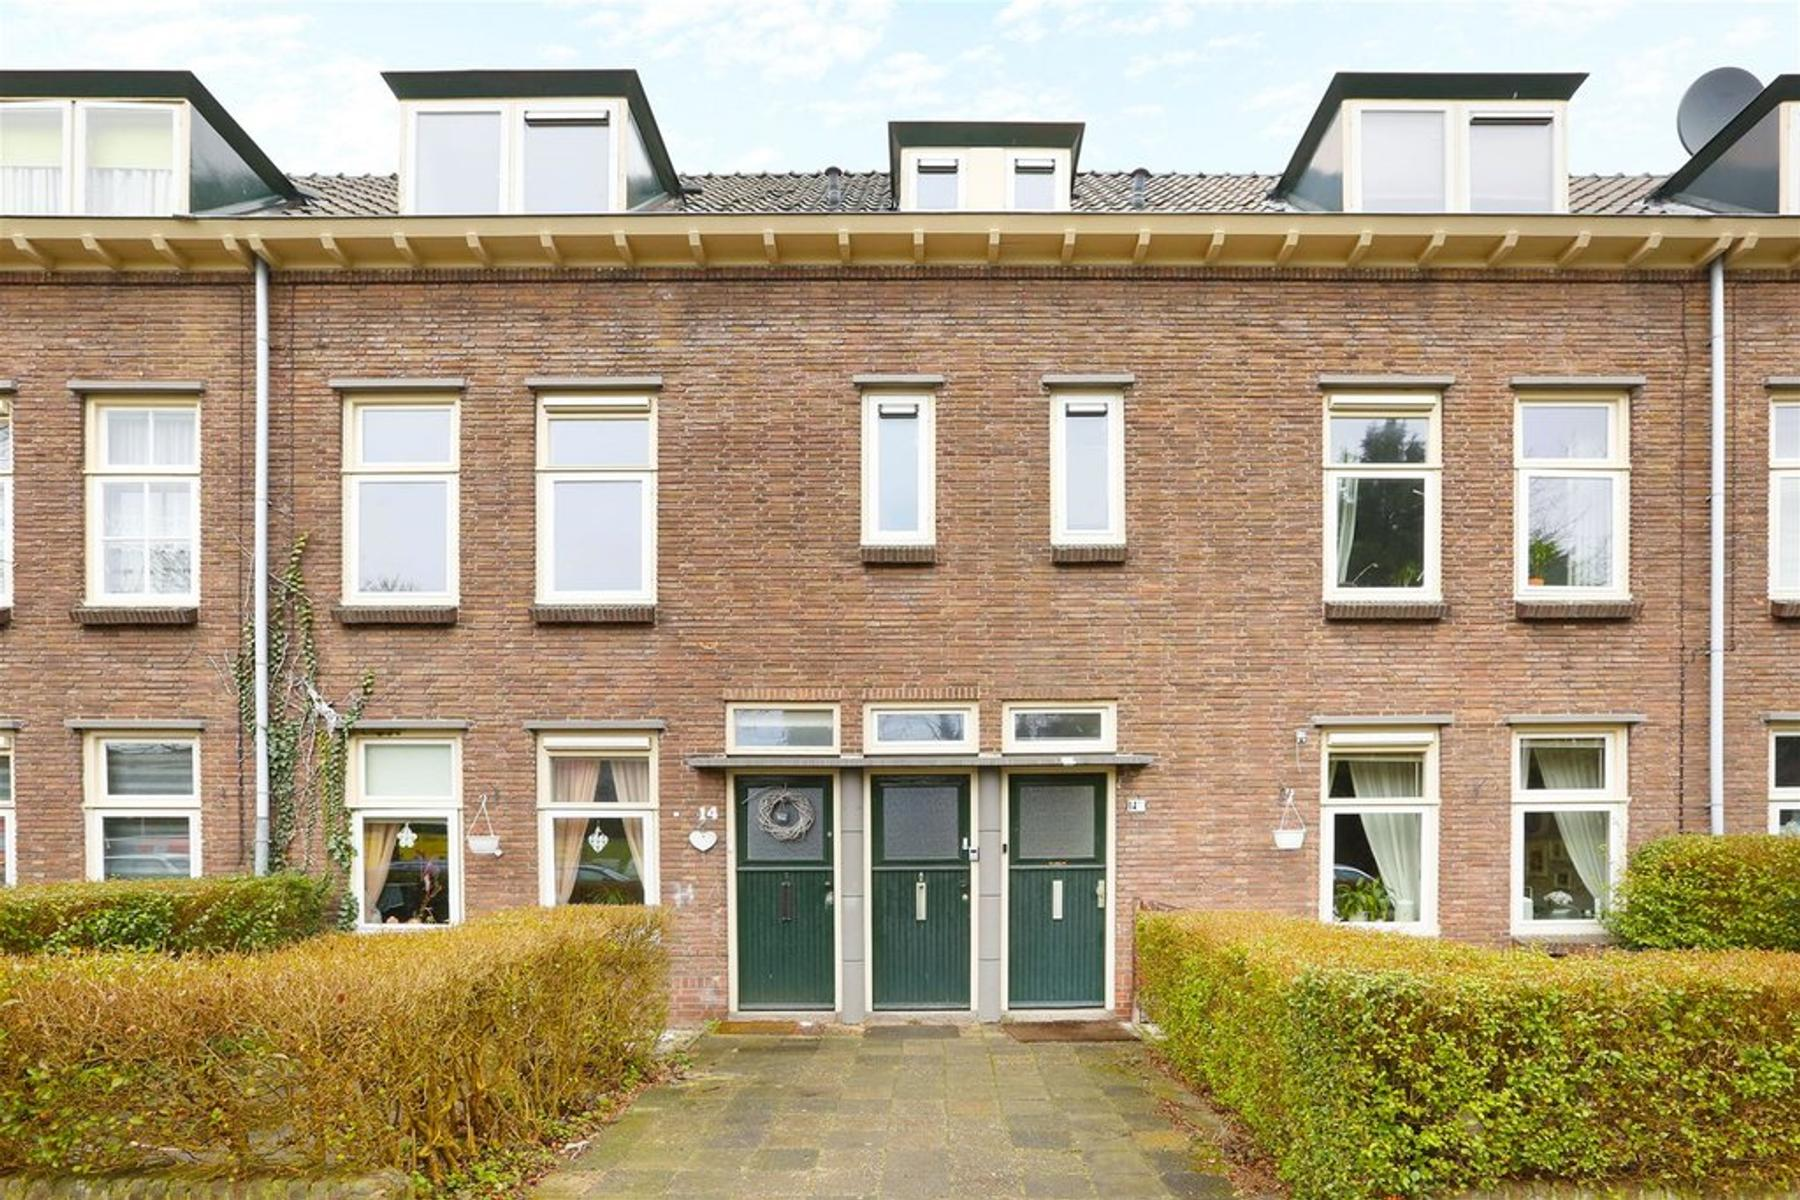 Petemoederslaan 14 bis in utrecht 3552 ah: appartement. renkema